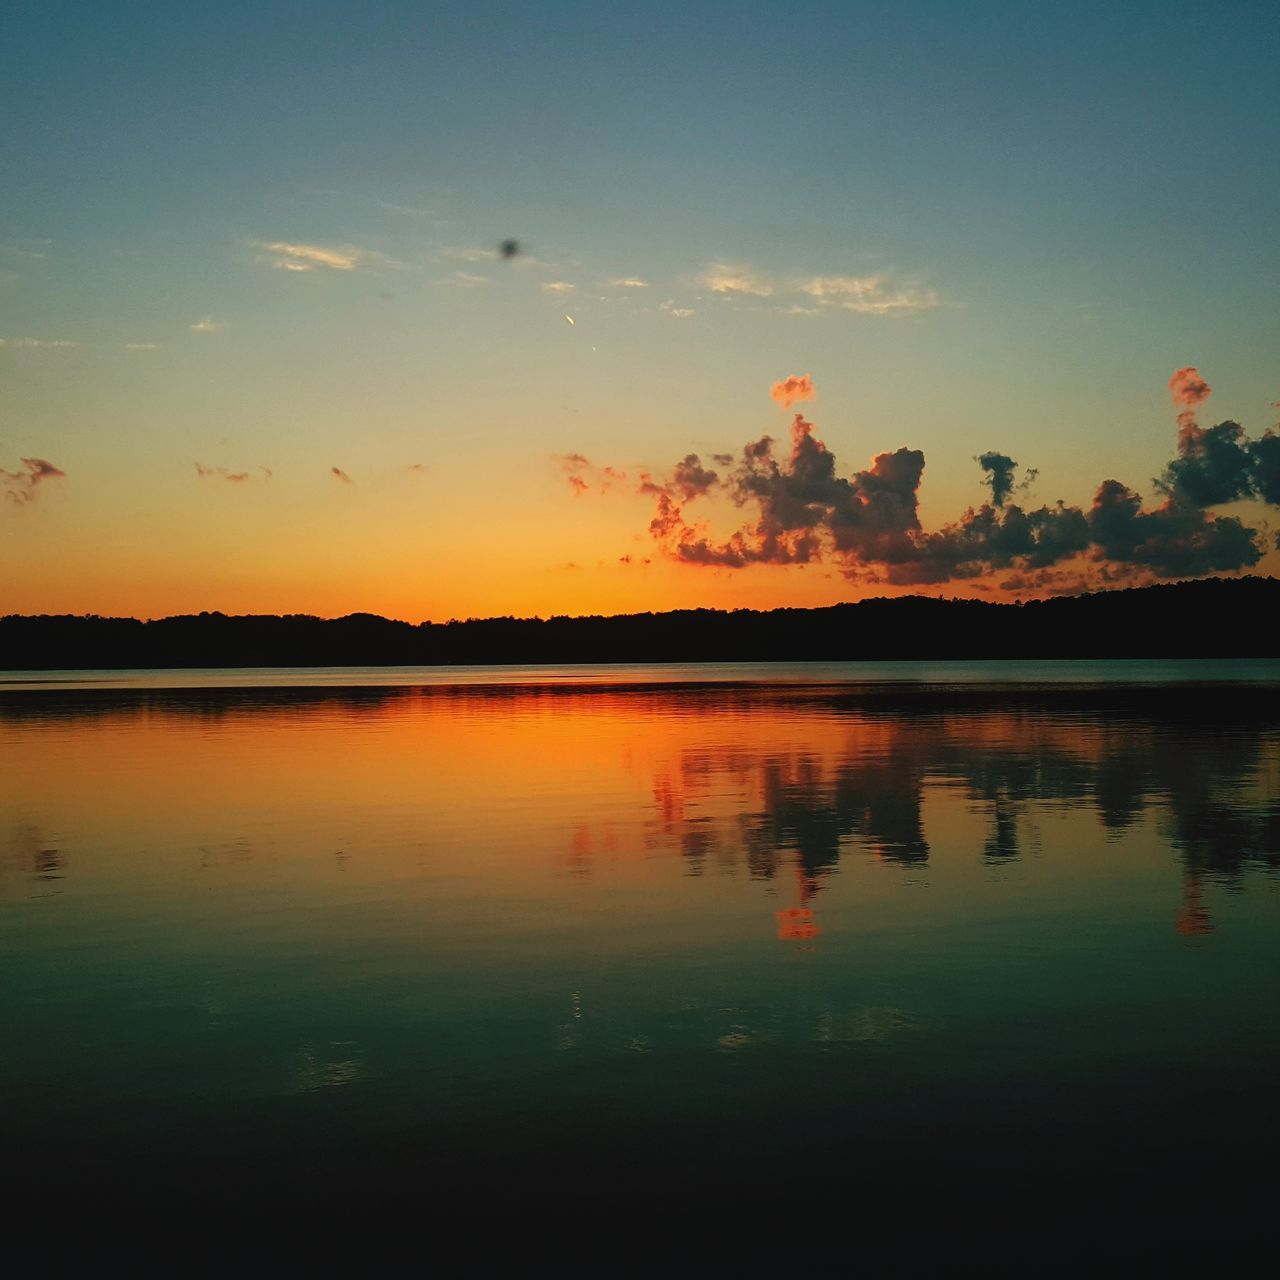 reflection, sunset, nature, sky, scenics, tranquility, beauty in nature, tranquil scene, water, silhouette, no people, lake, outdoors